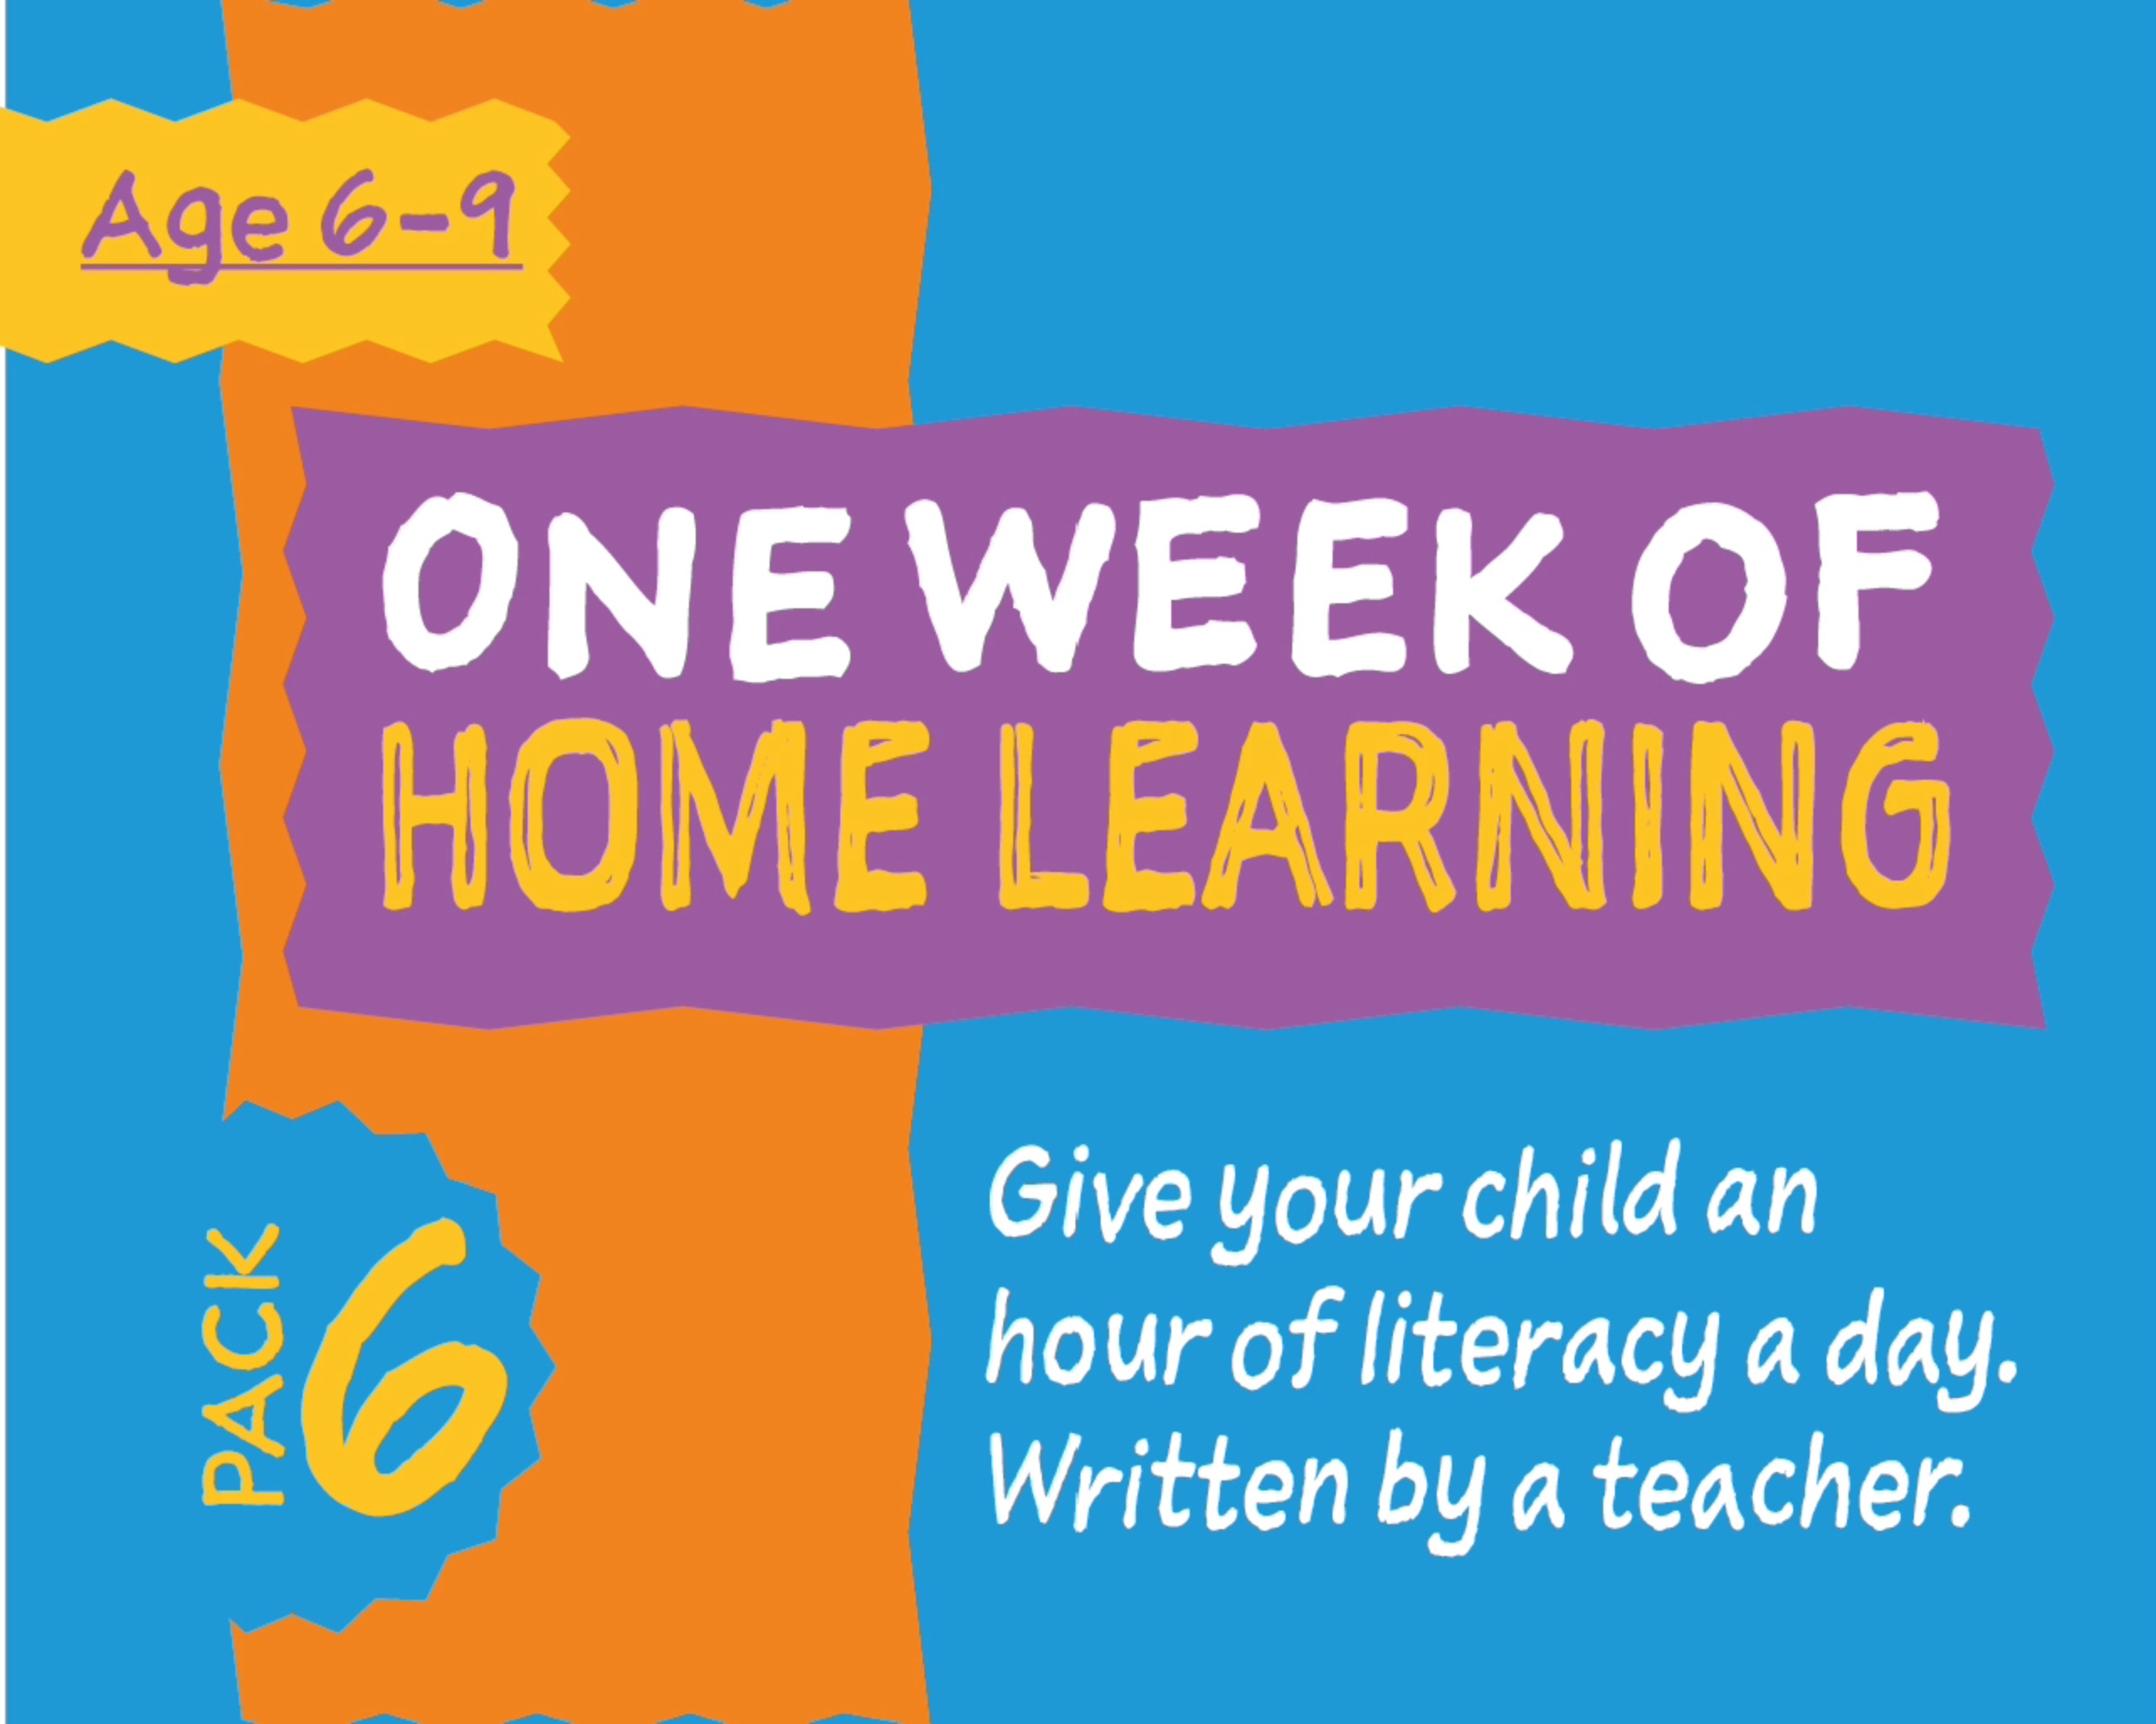 1 Week Literacy Distance Learning: PACK SIX (age 6-9) Grades 1-3